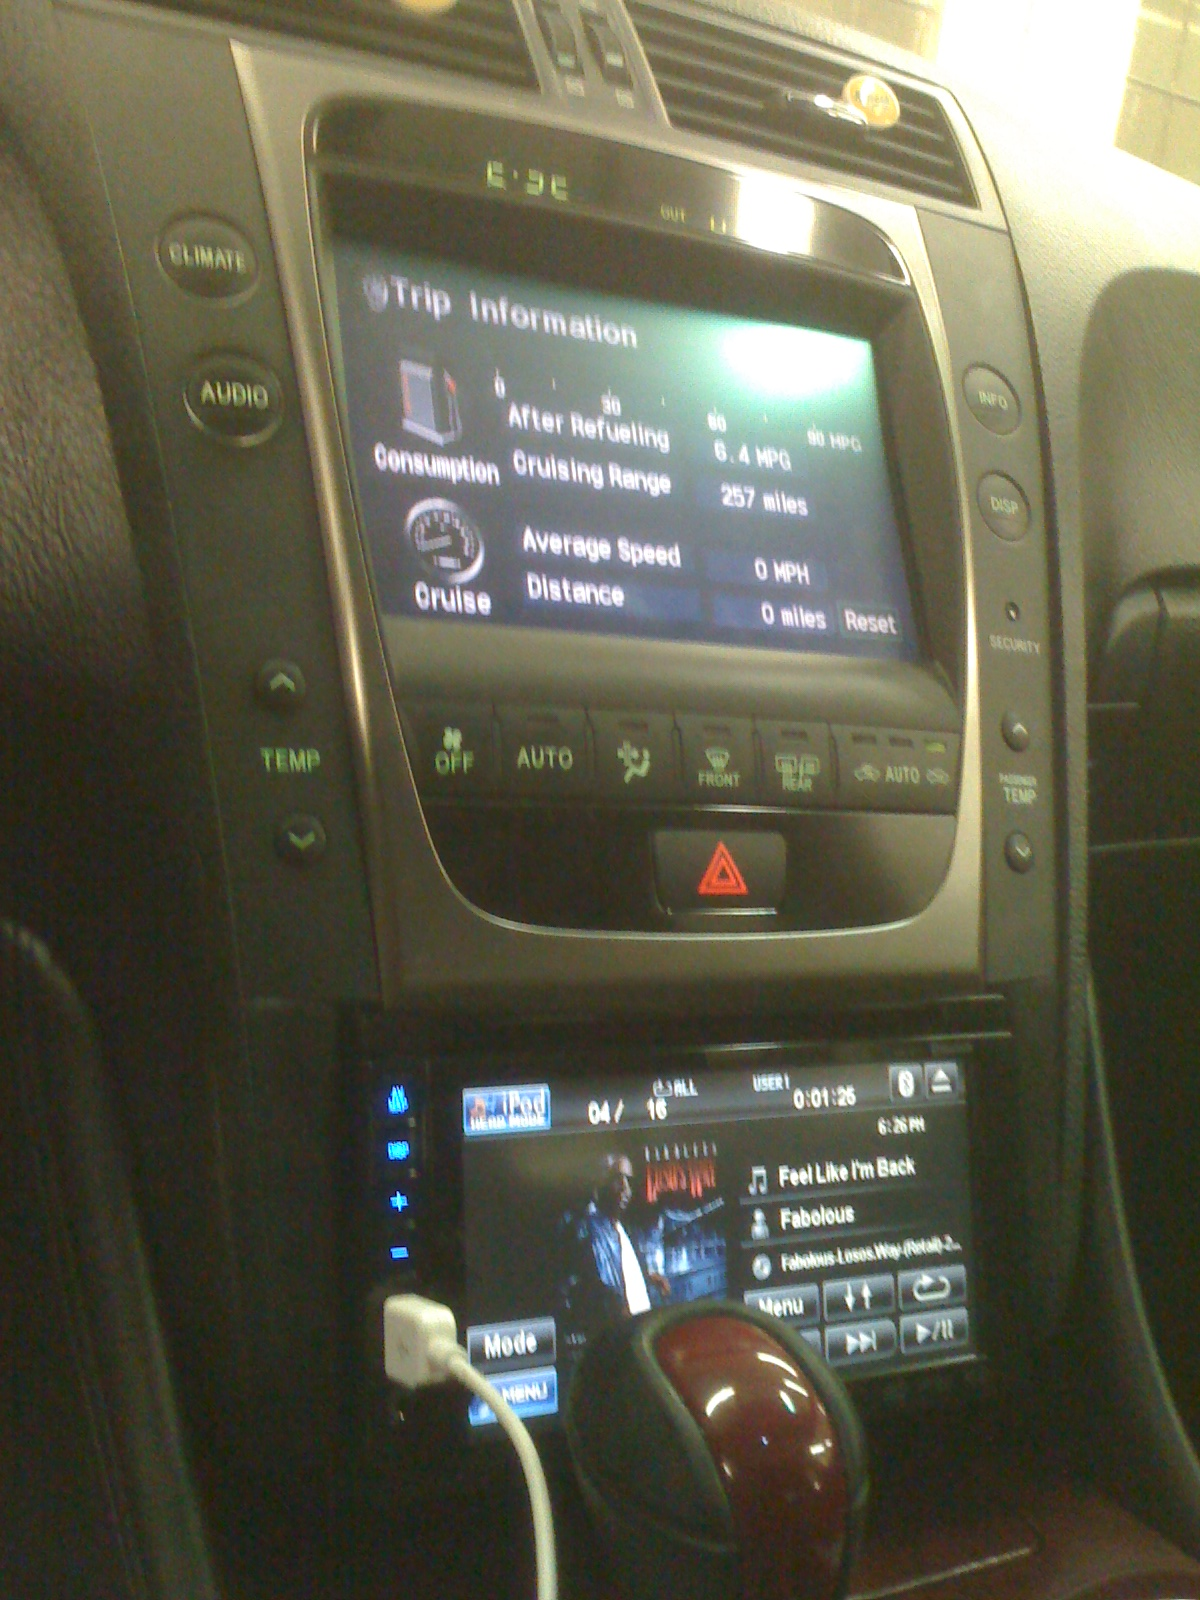 Stereo Options for my 08 GS 350 wMark Levinson